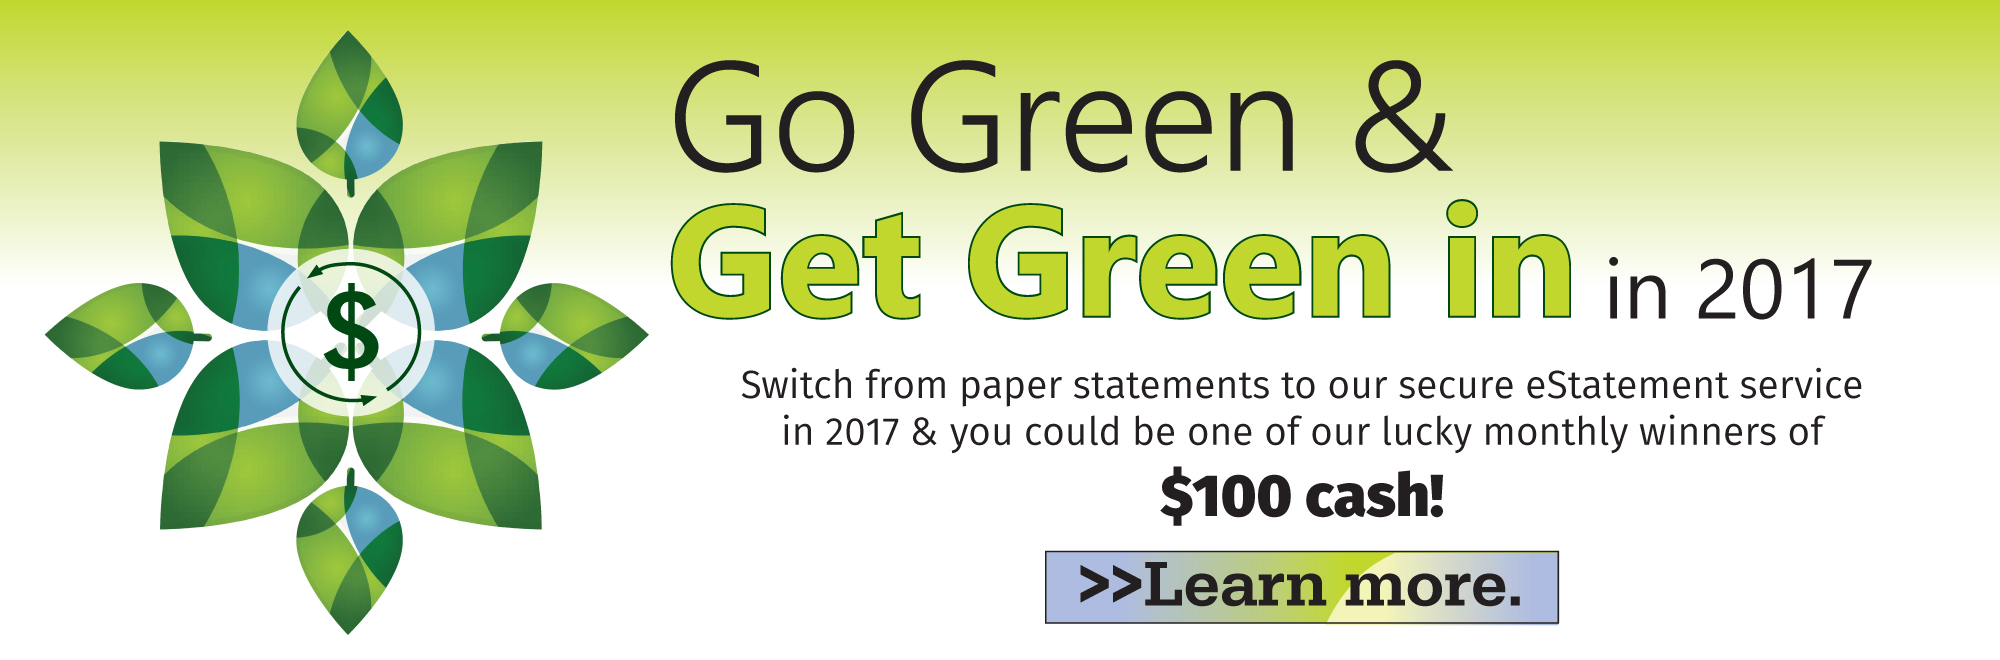 Go Green and Get Green Banner image